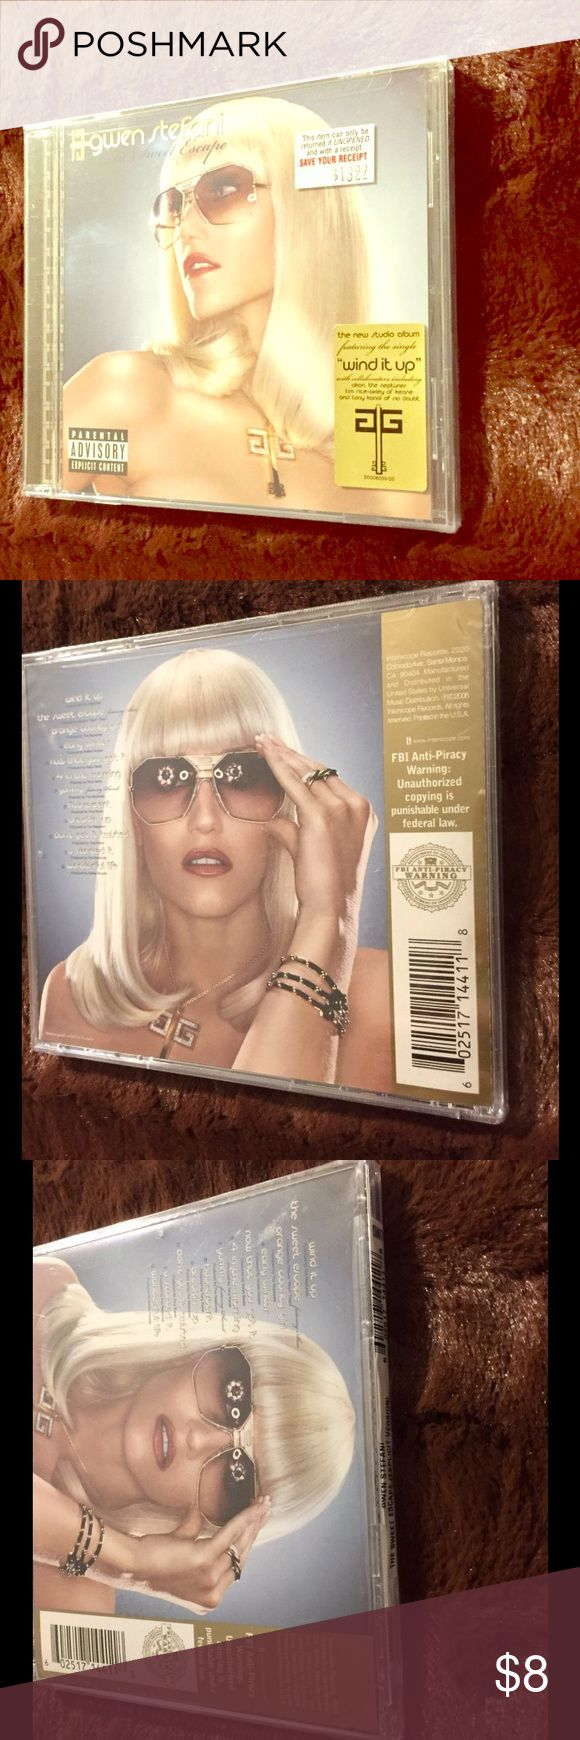 NIP Gwen Stefani CD NEW IN PACKAGE! Gwen Stefani CD, Album Escape. New and sealed. 30% off two items! Other